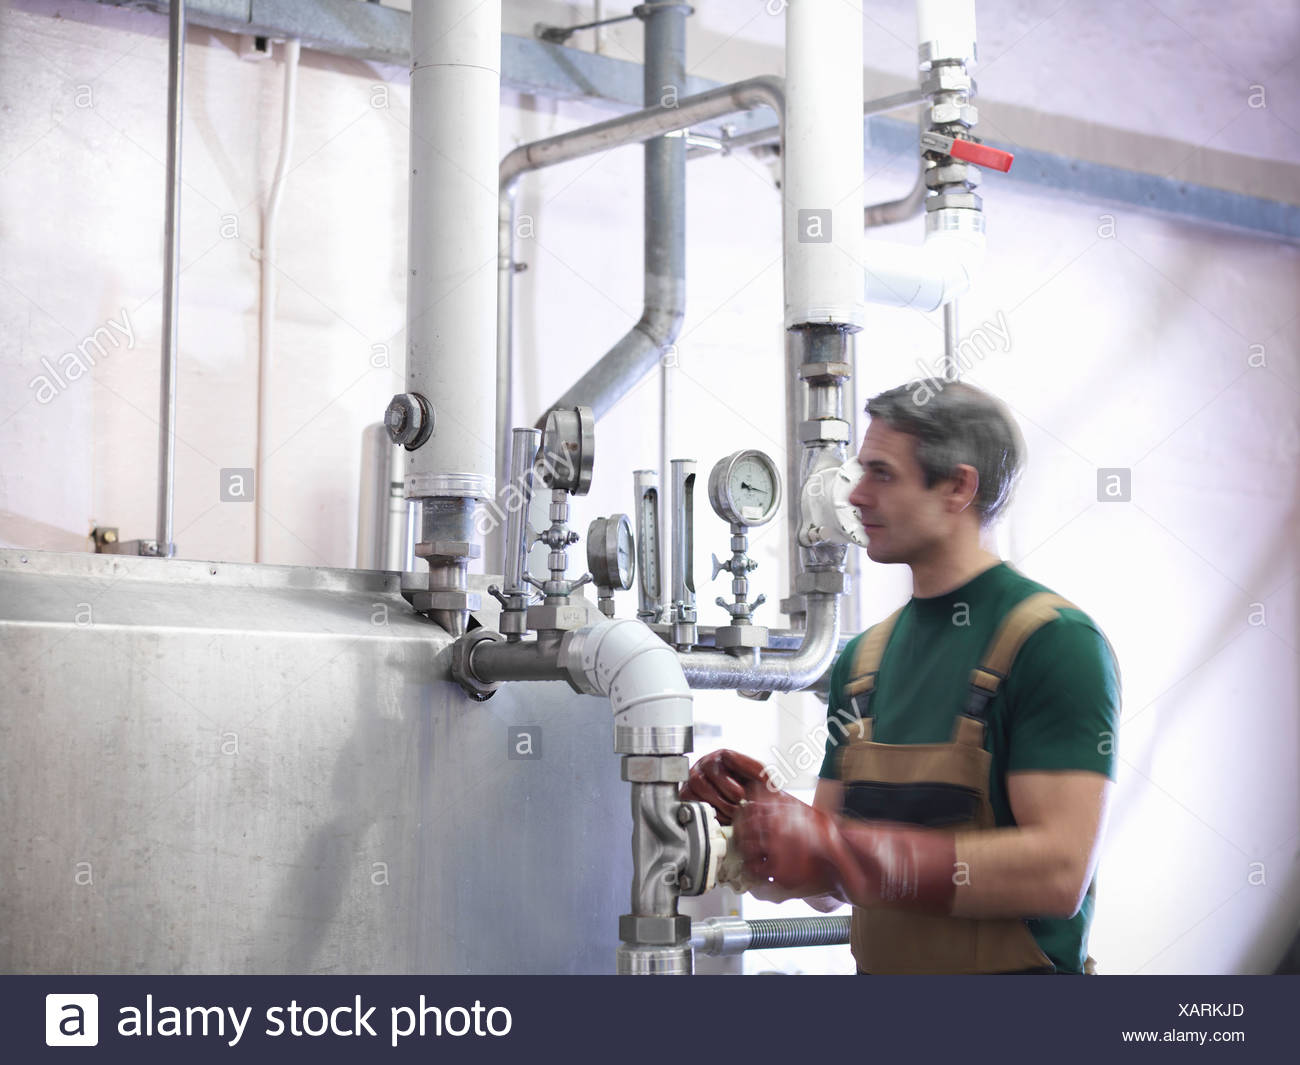 Worker turning valve in brewery - Stock Image